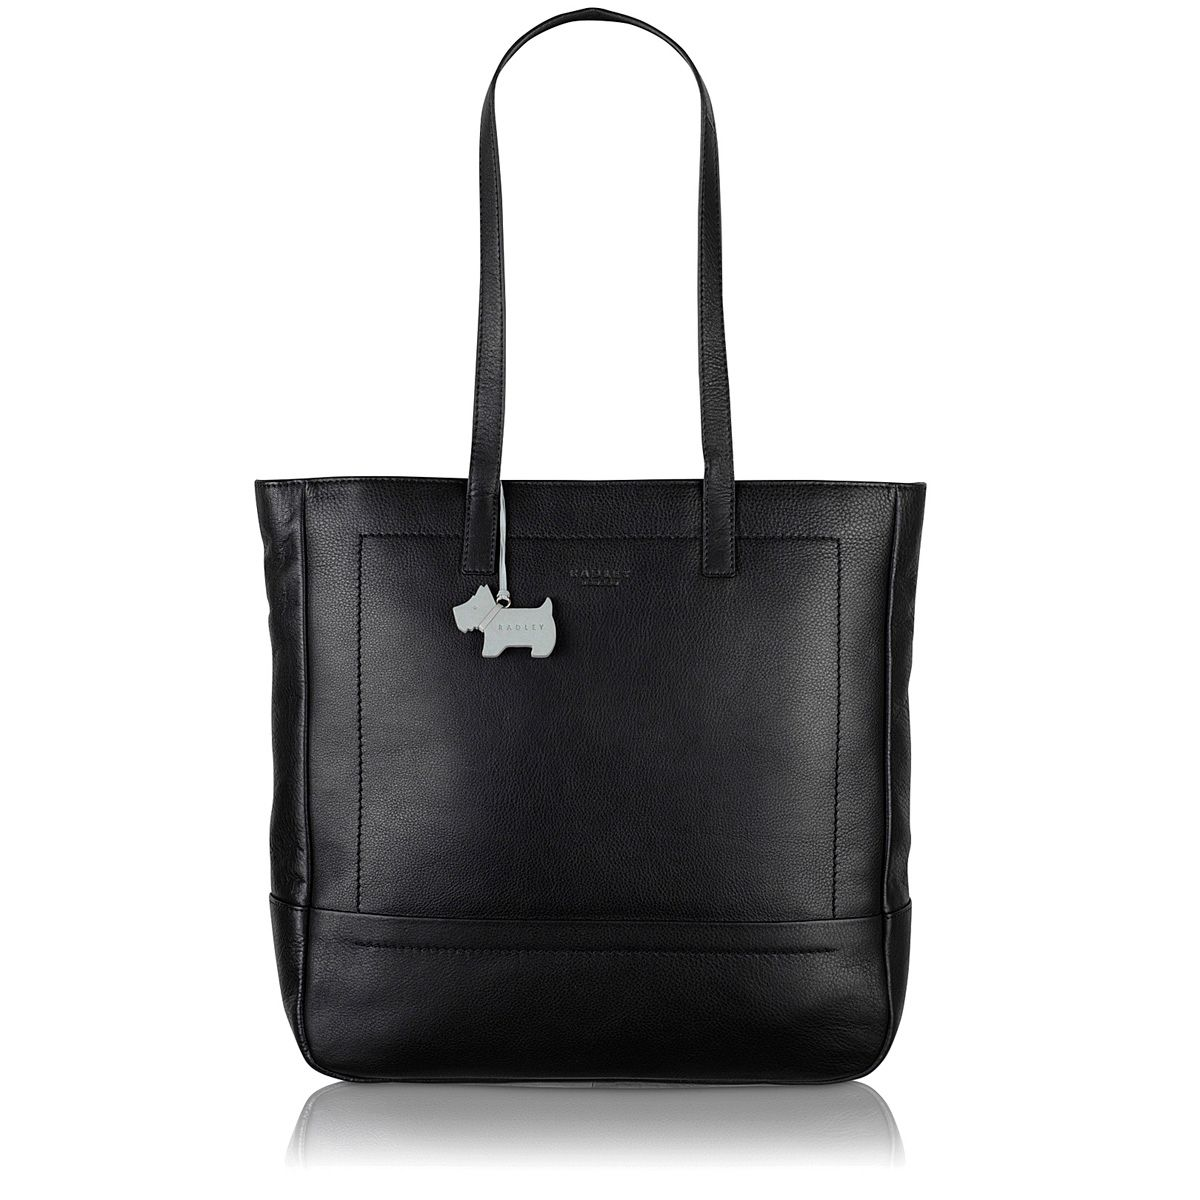 Finsbury large ziptop tote leather black bag